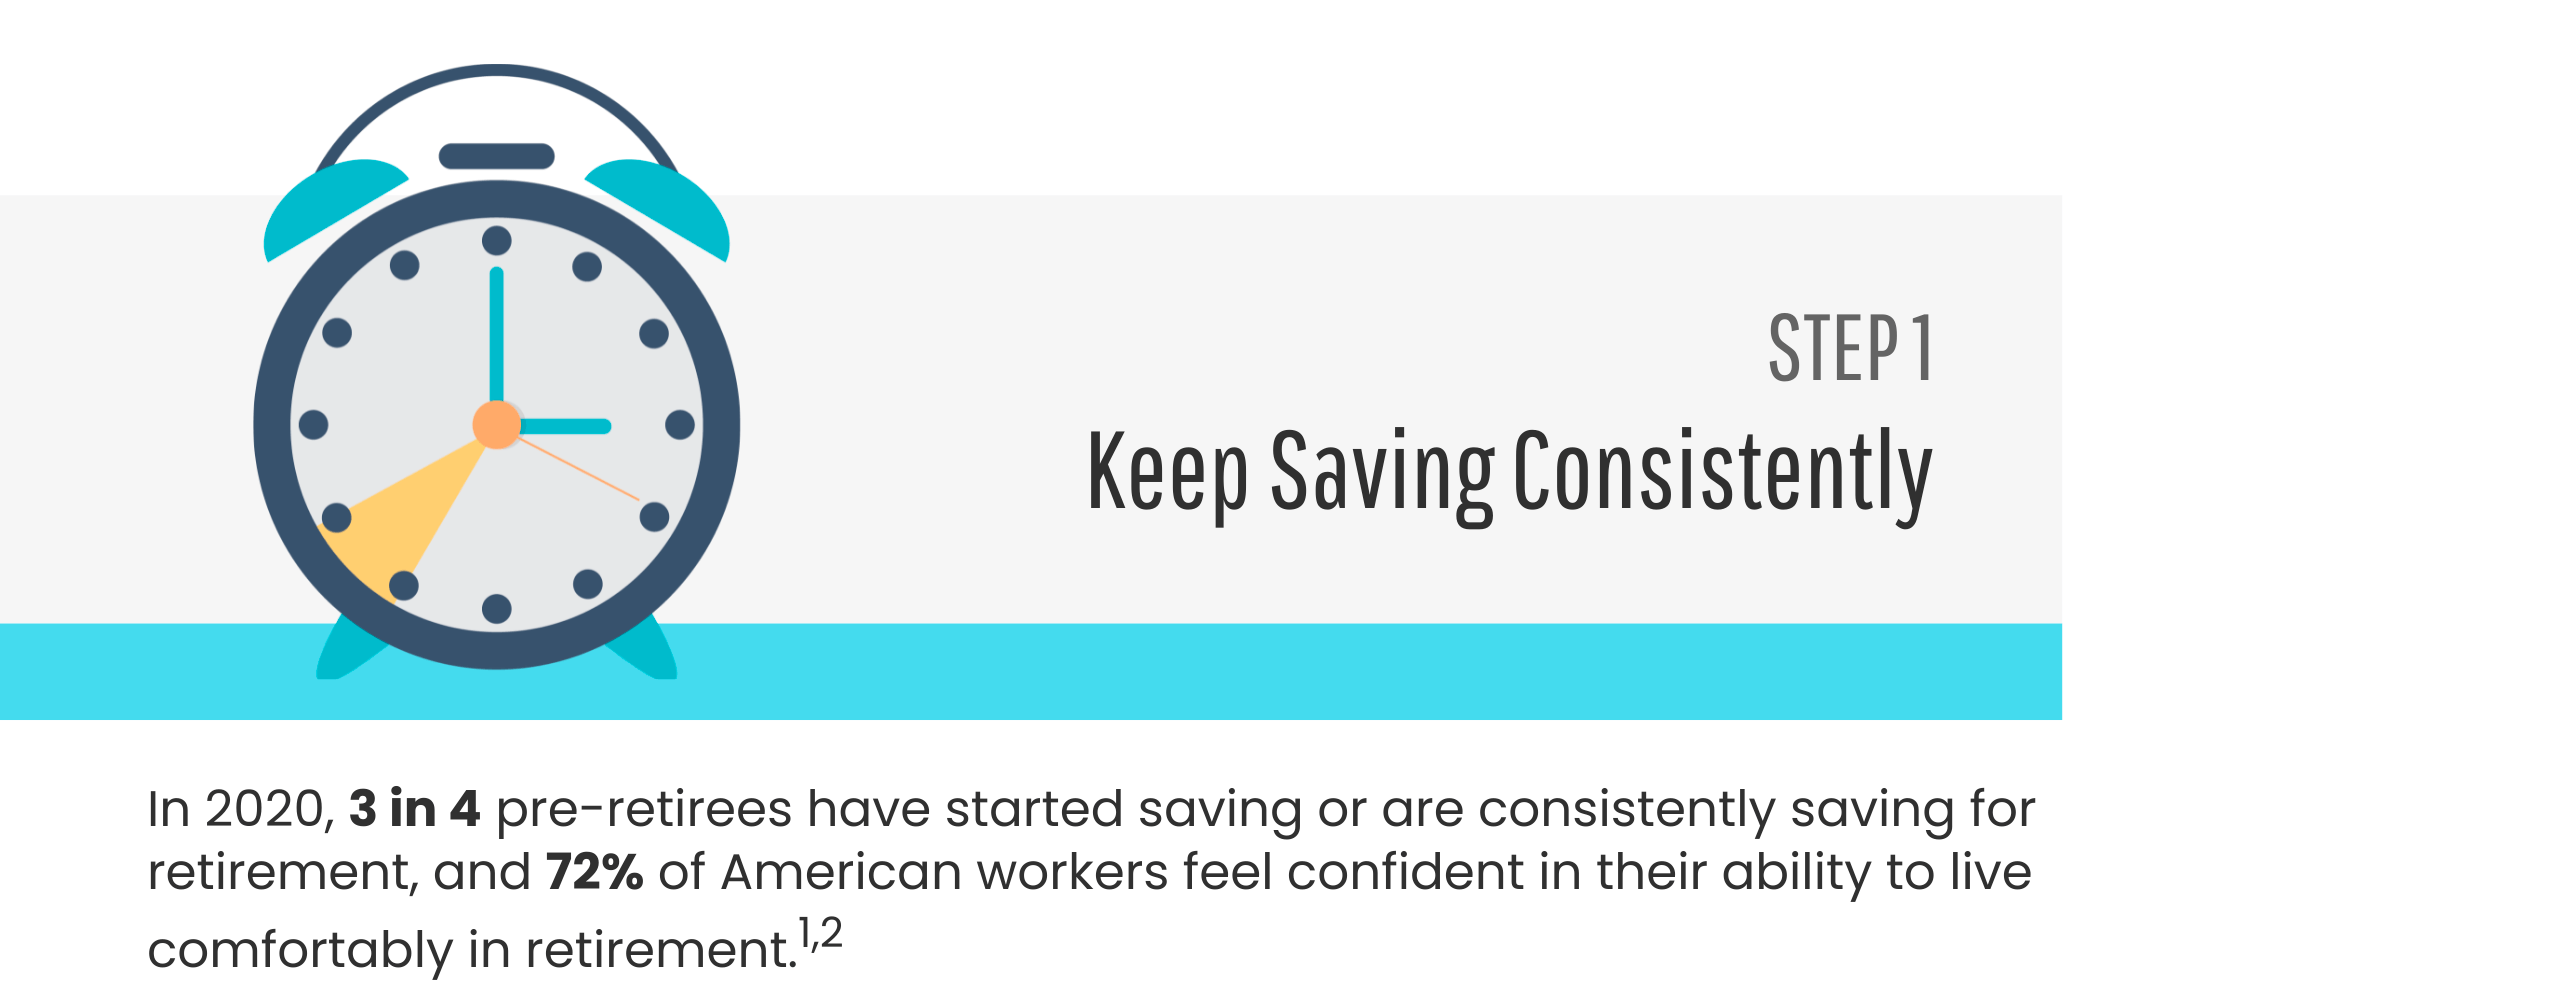 Step 1: Keep Saving Consistently. In 2020, 3 in 4 pre-retirees have begun to save or are consistently saving for retirement, and 72% of American workers feel confident in their ability to live comfortably in retirement.